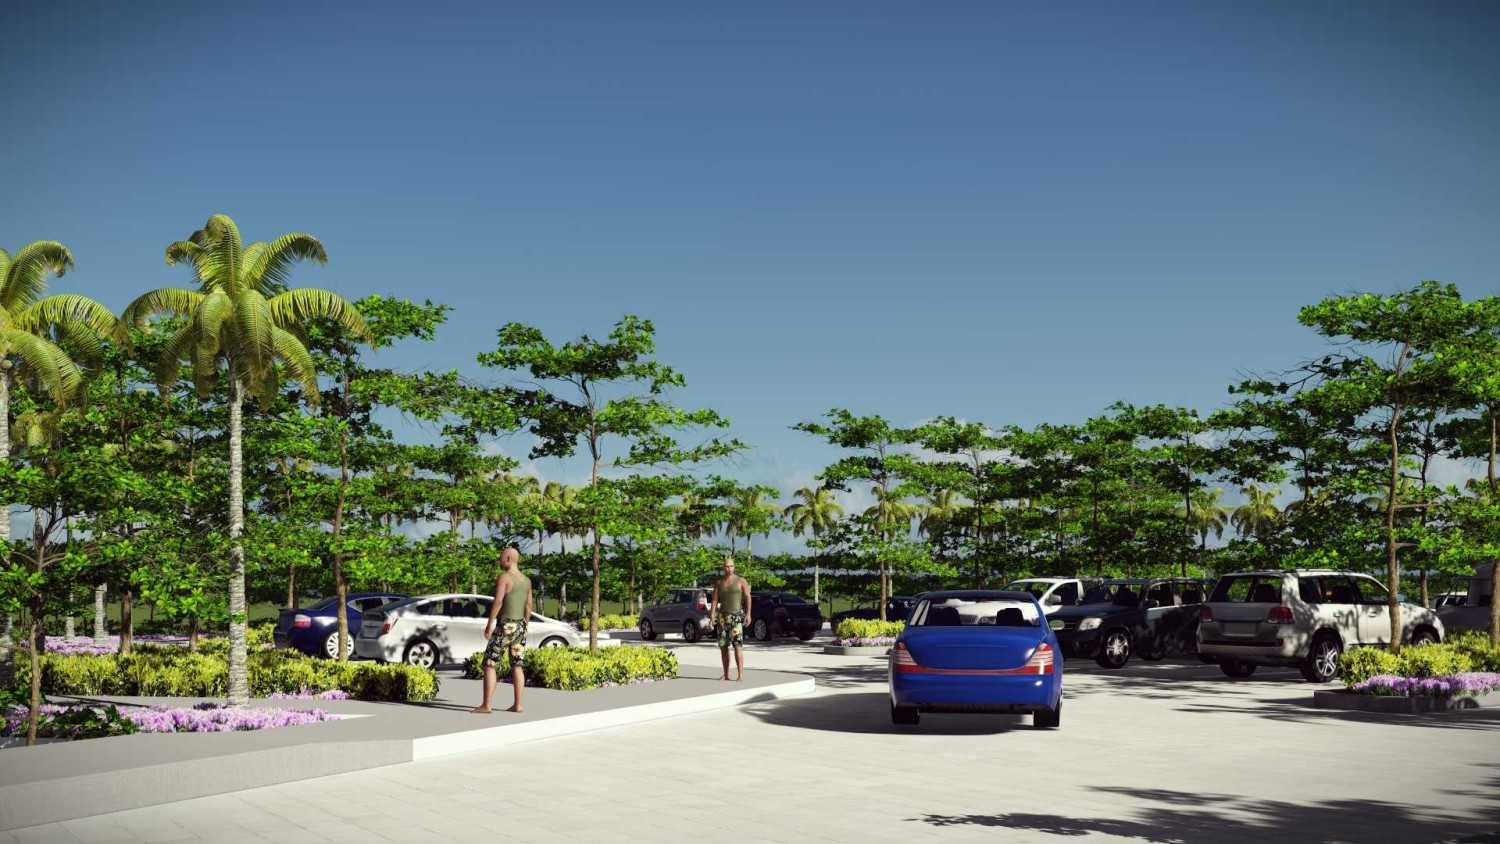 Mannor Architect Maelang Parking Area Gorontalo, Indonesia Gorontalo, Indonesia Maelang Rest Area  40748